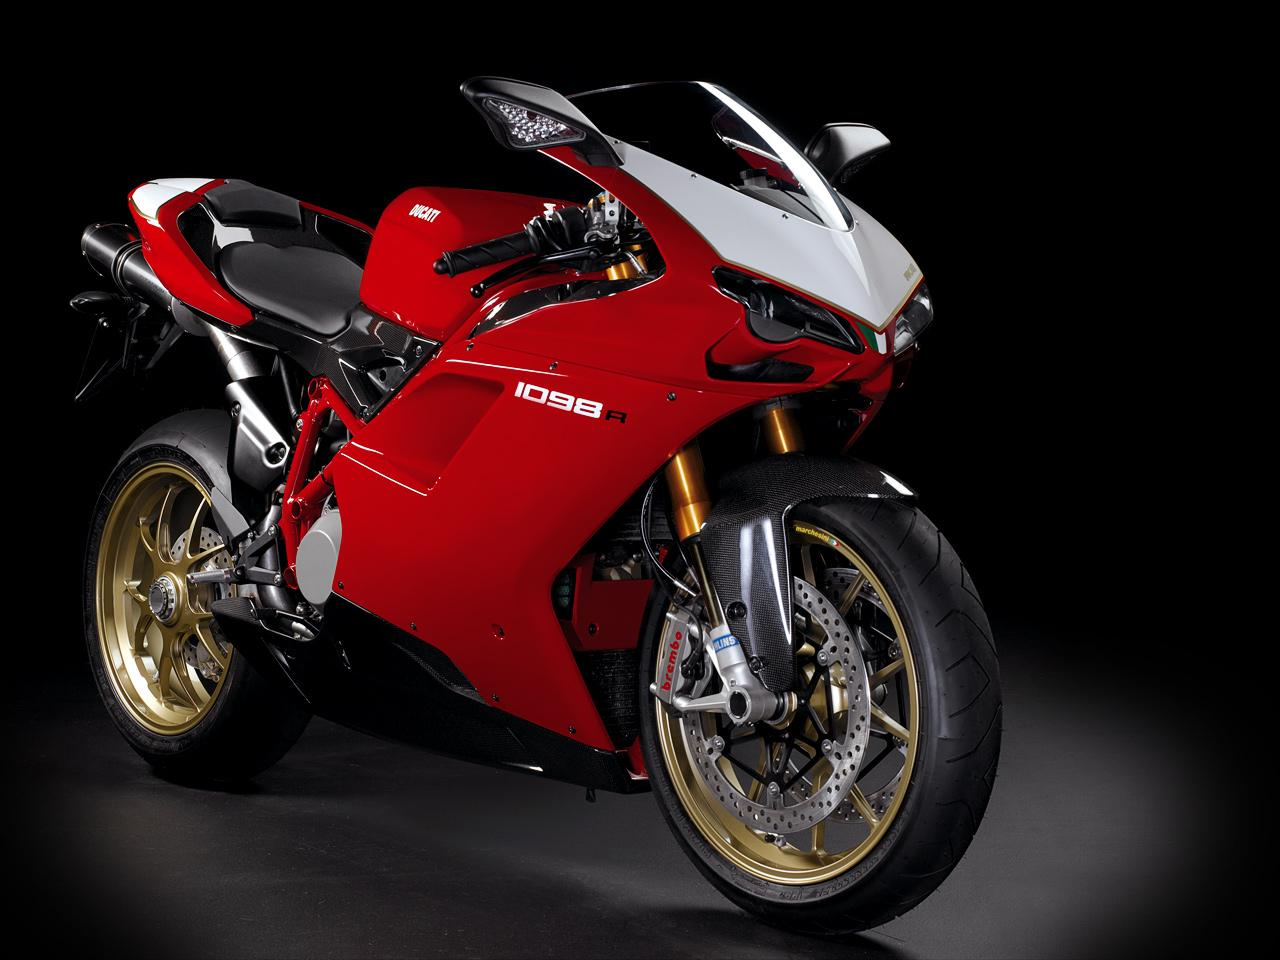 2008 Ducati 1098 R Review - Top Speed